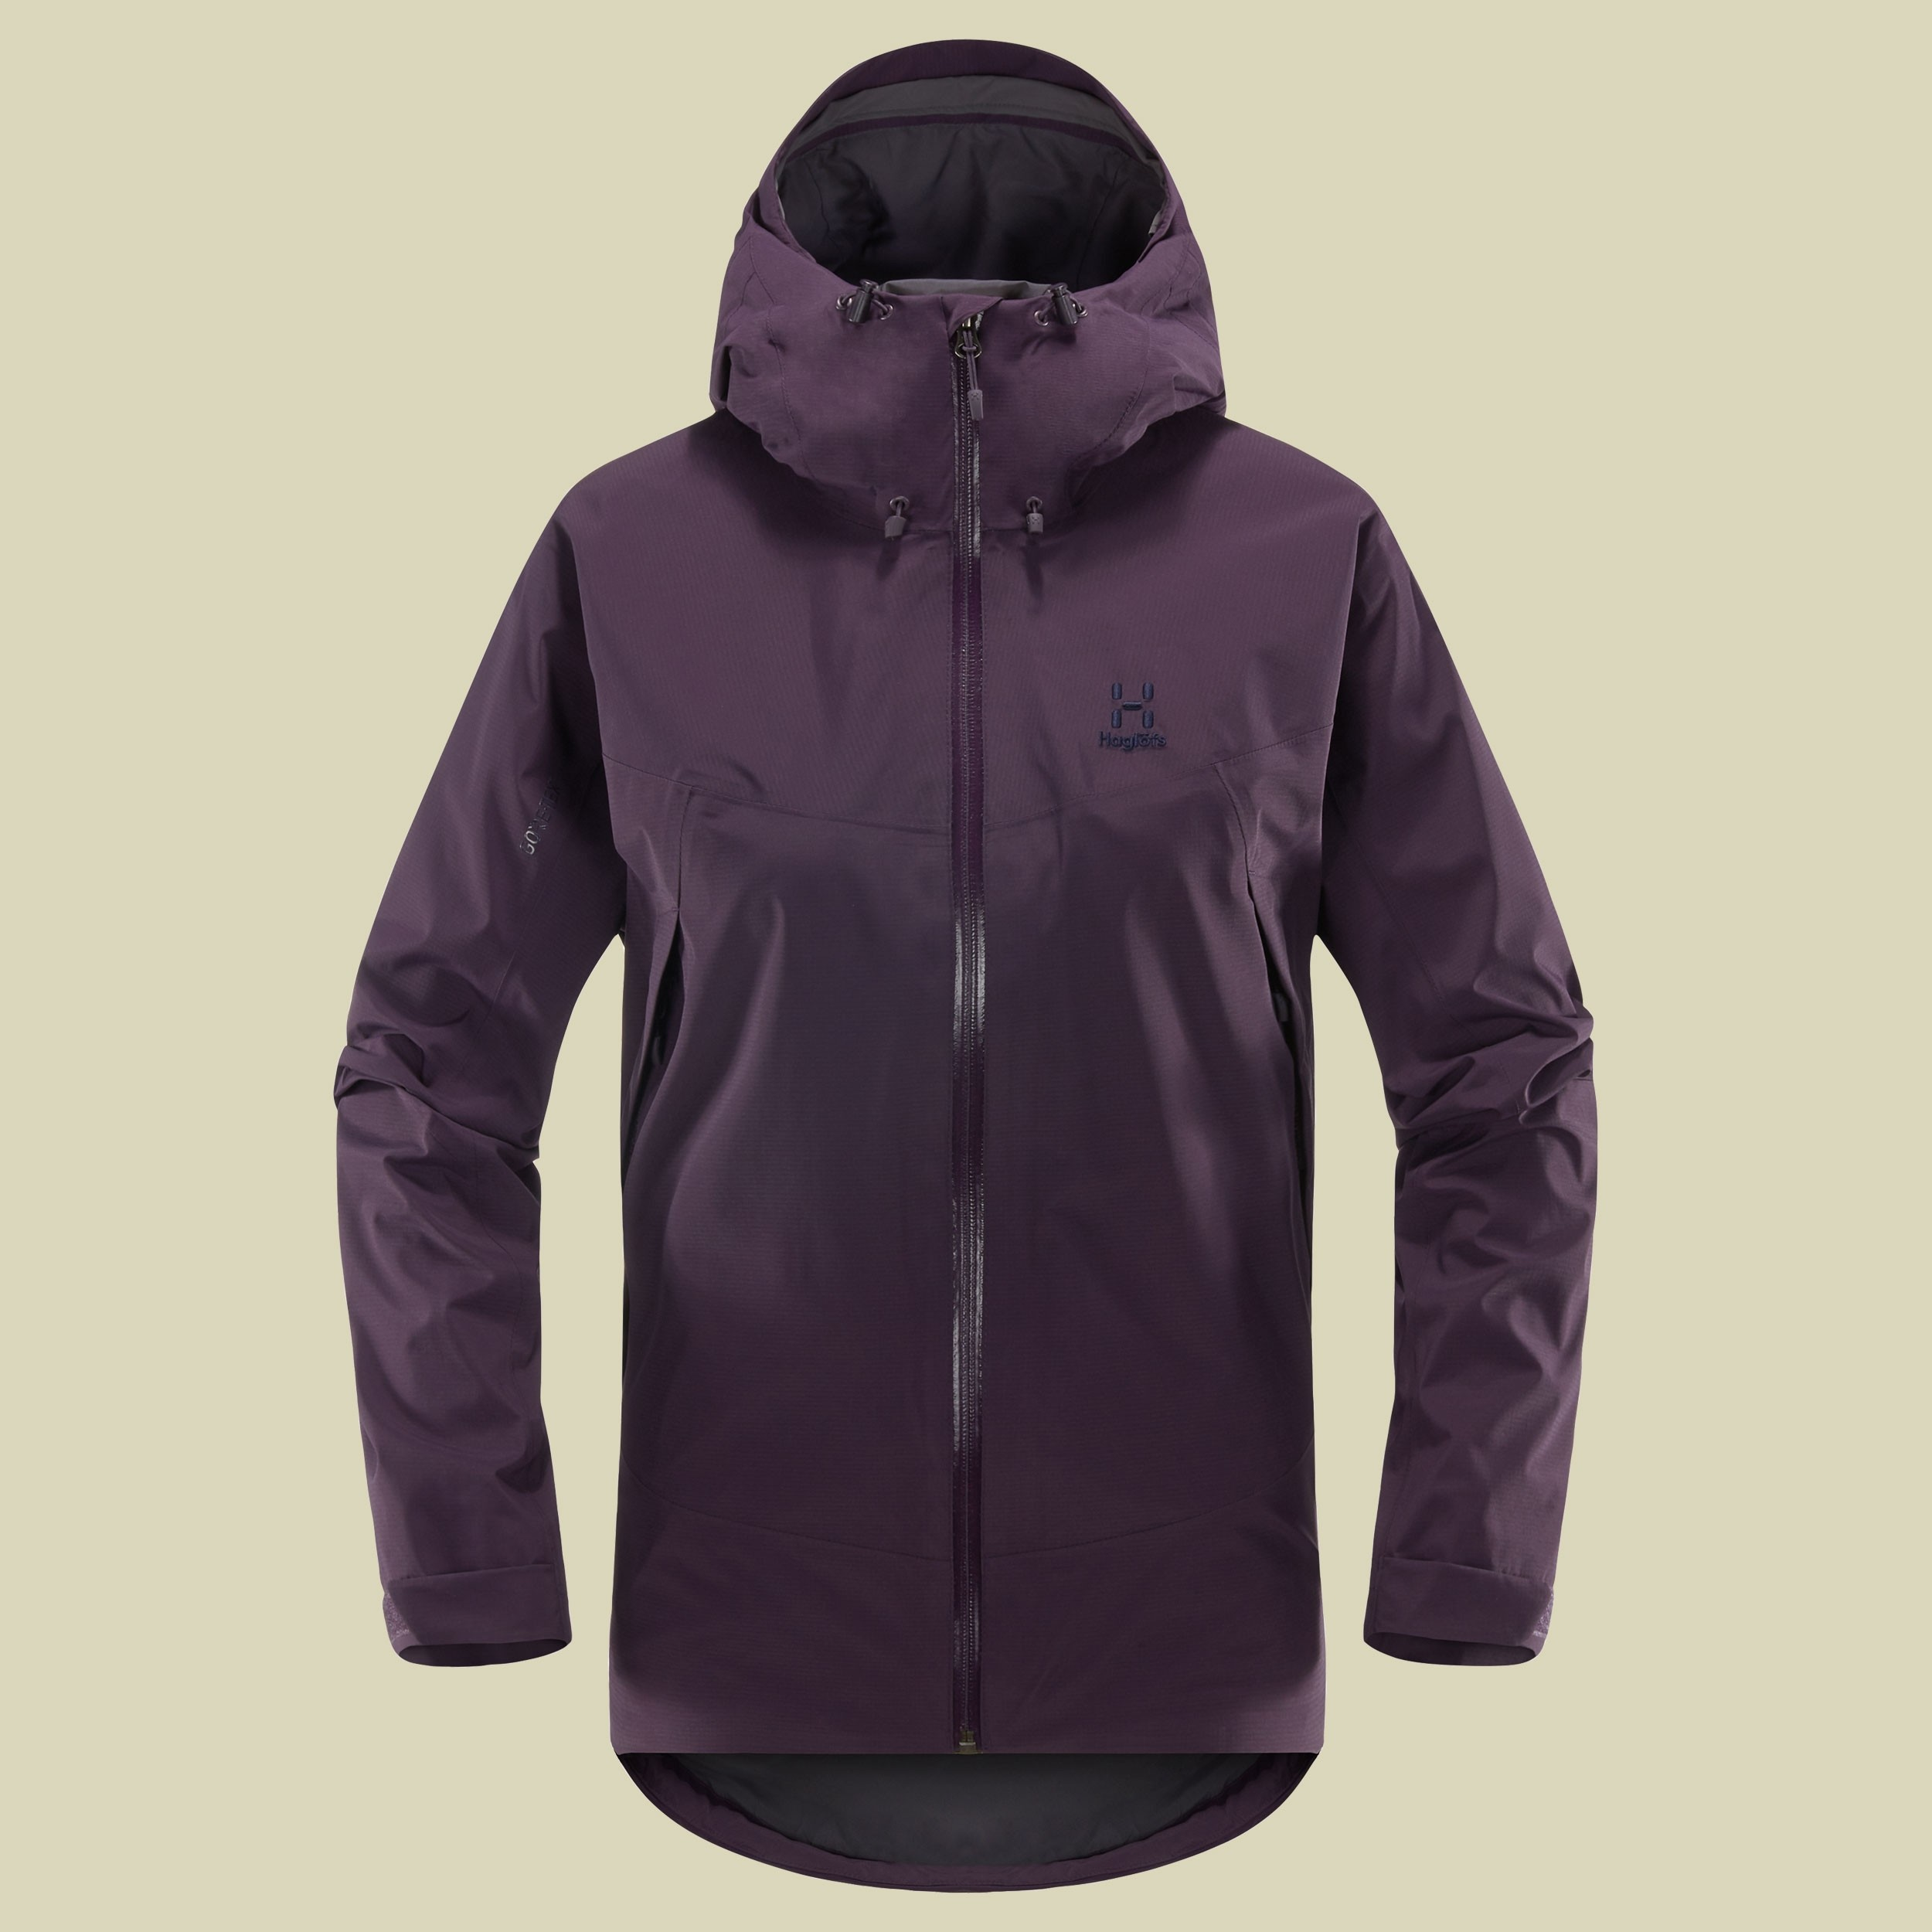 Virgo Jacket Women